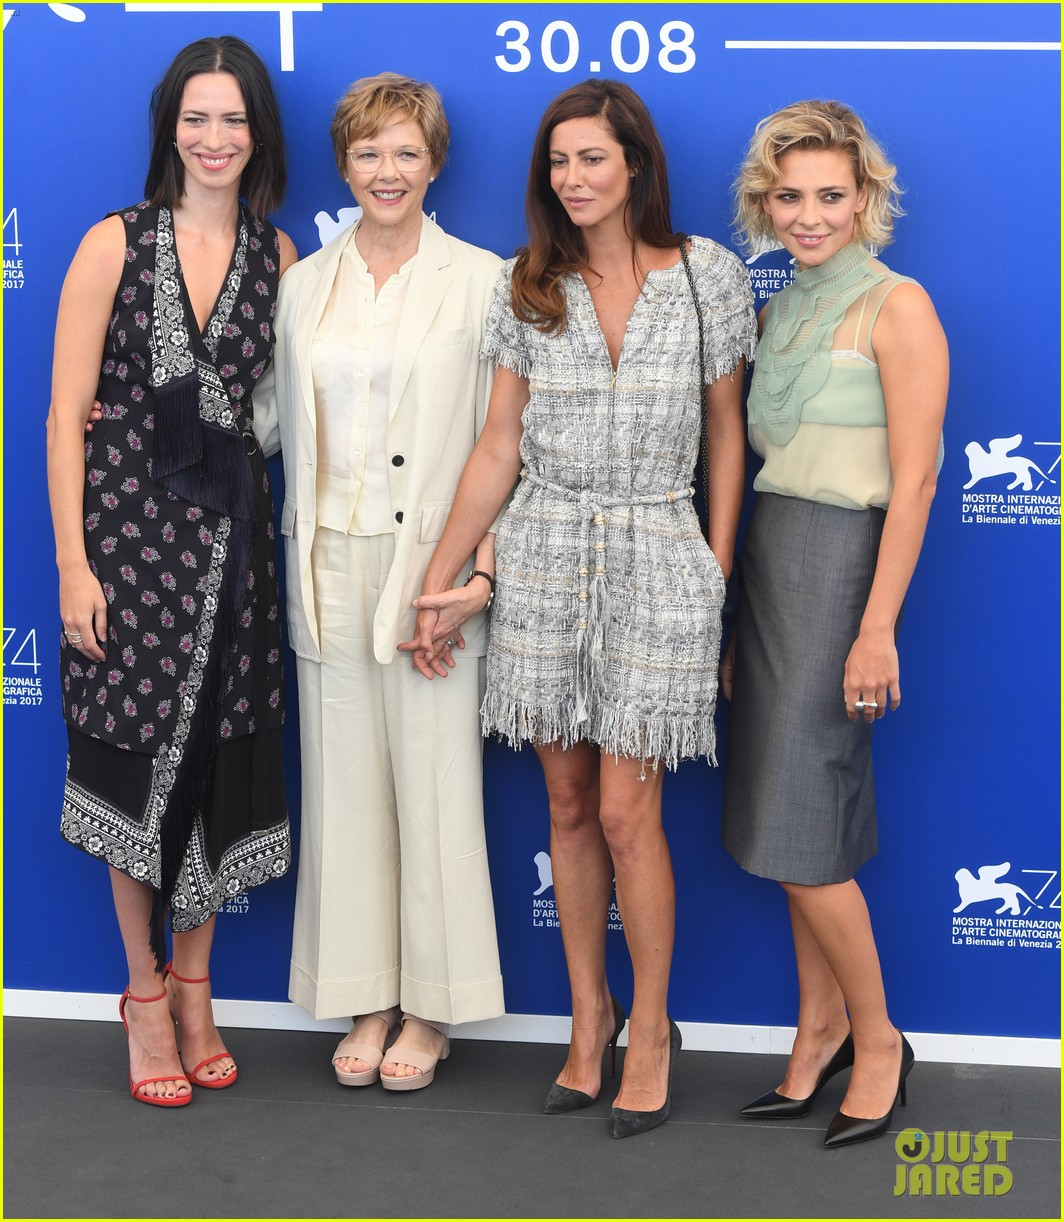 annette bening on lack of female directors at venice film fest sexism does exist 033948123